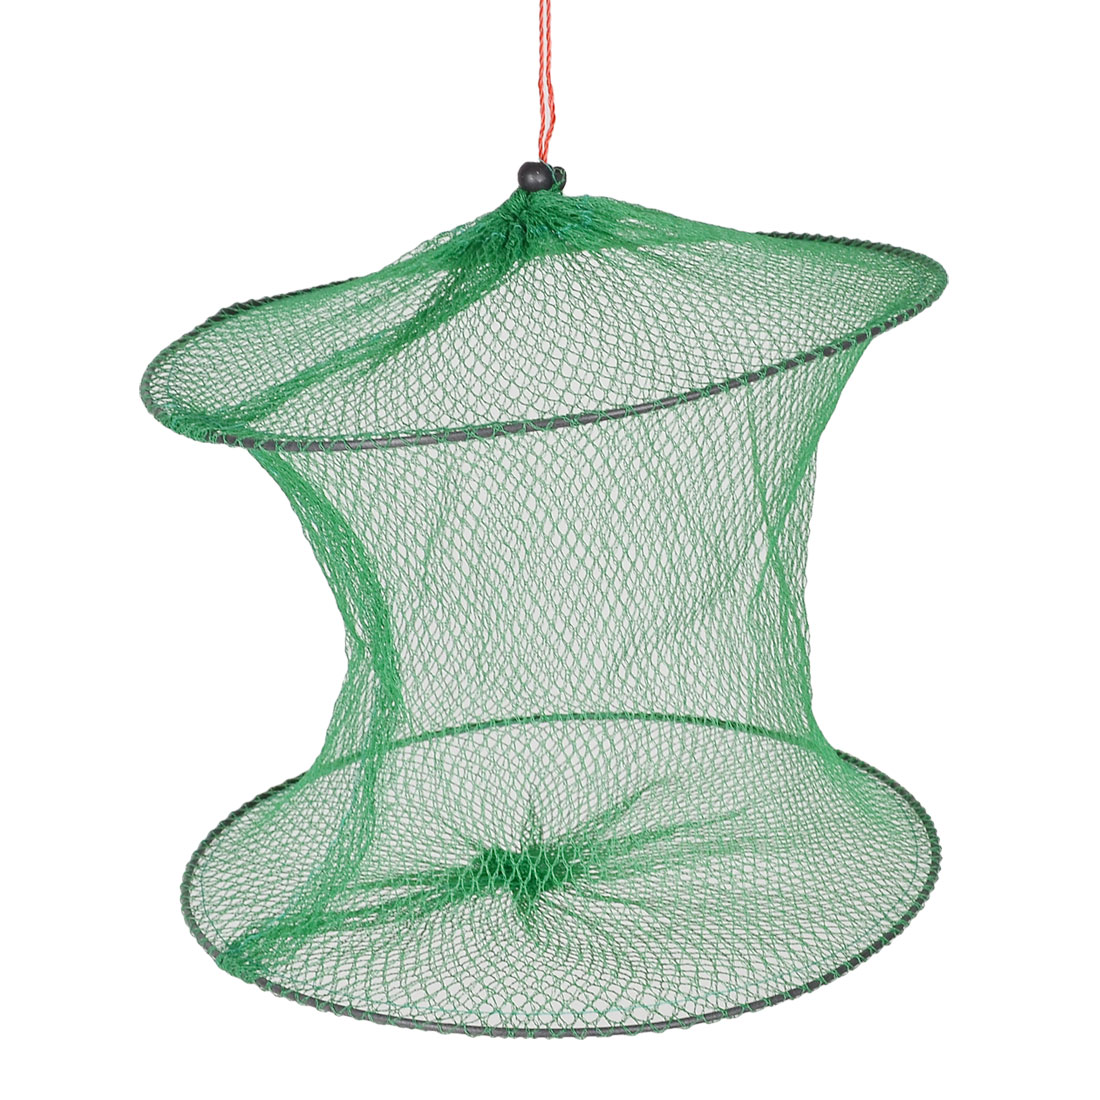 "Unique Bargains 8.6"" 2 Layers Foldable Fishing Landing Net Fish Basket for Fishermen Minnows Green"